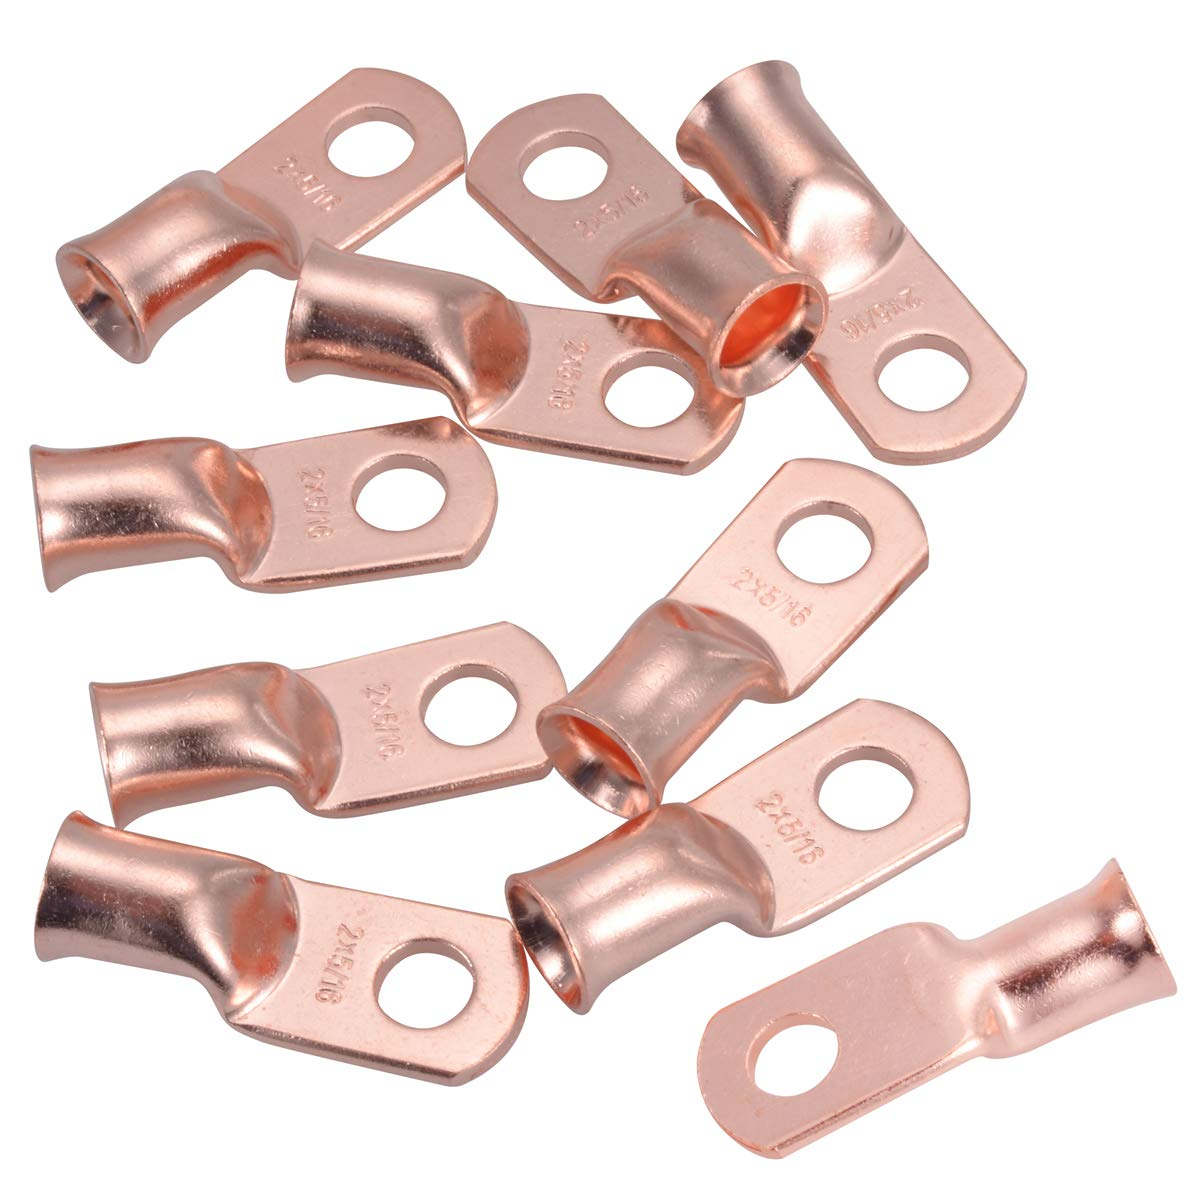 35mm² COPPER TUBE RING CRIMP TERMINALS BATTERY,STARTER,WELDING CABLE CONNECTORS